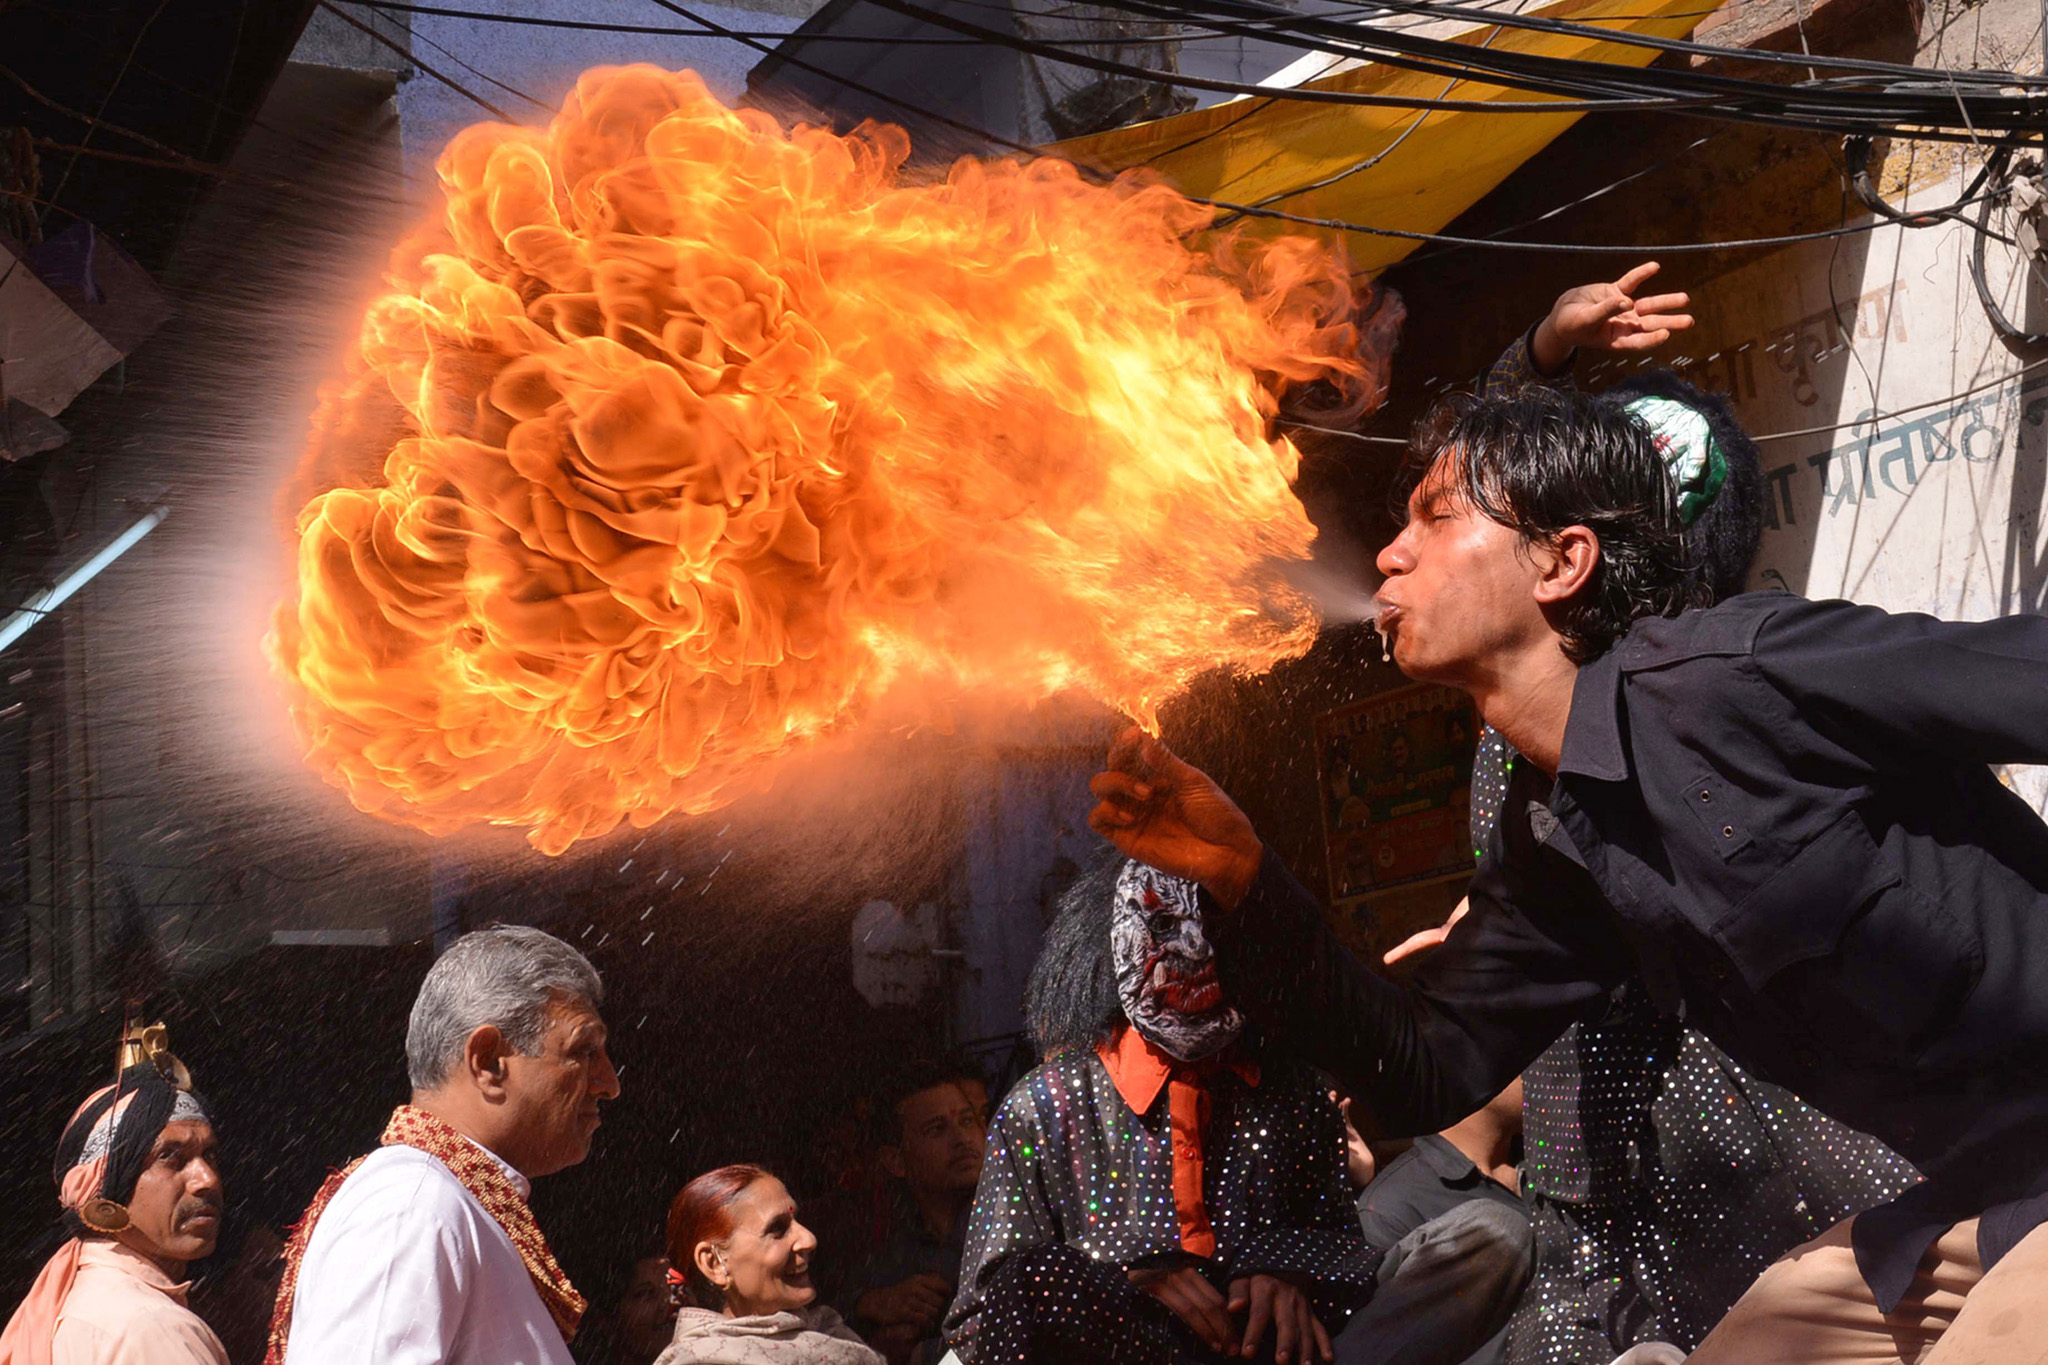 An Indian Hindu devotee performs with fi...An Indian Hindu devotee performs with fire as he participates in a procession ahead of the Holi festival in Amritsar on March 12, 2014. Holi, the popular Hindu spring festival of colours is observed in India at the end of the winter season on the last full moon of the lunar month and will be celebrated on March 16 this year. AFP PHOTO/NARINDER NANUNARINDER NANU/AFP/Getty Images